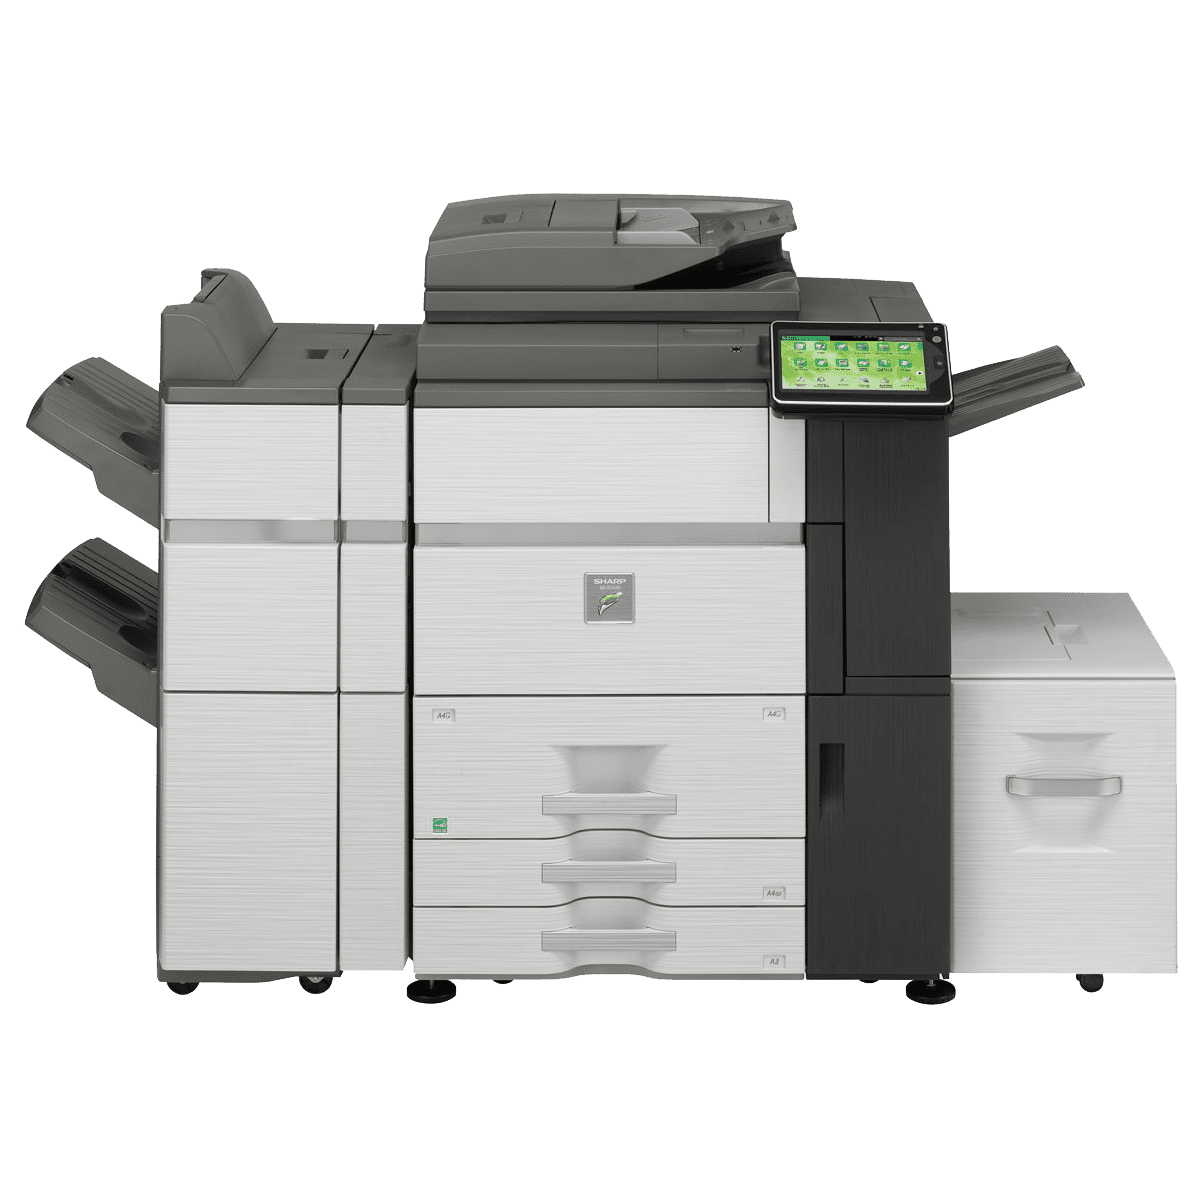 Sharp MX-6500N Copier Review | Commercial Copy Machine